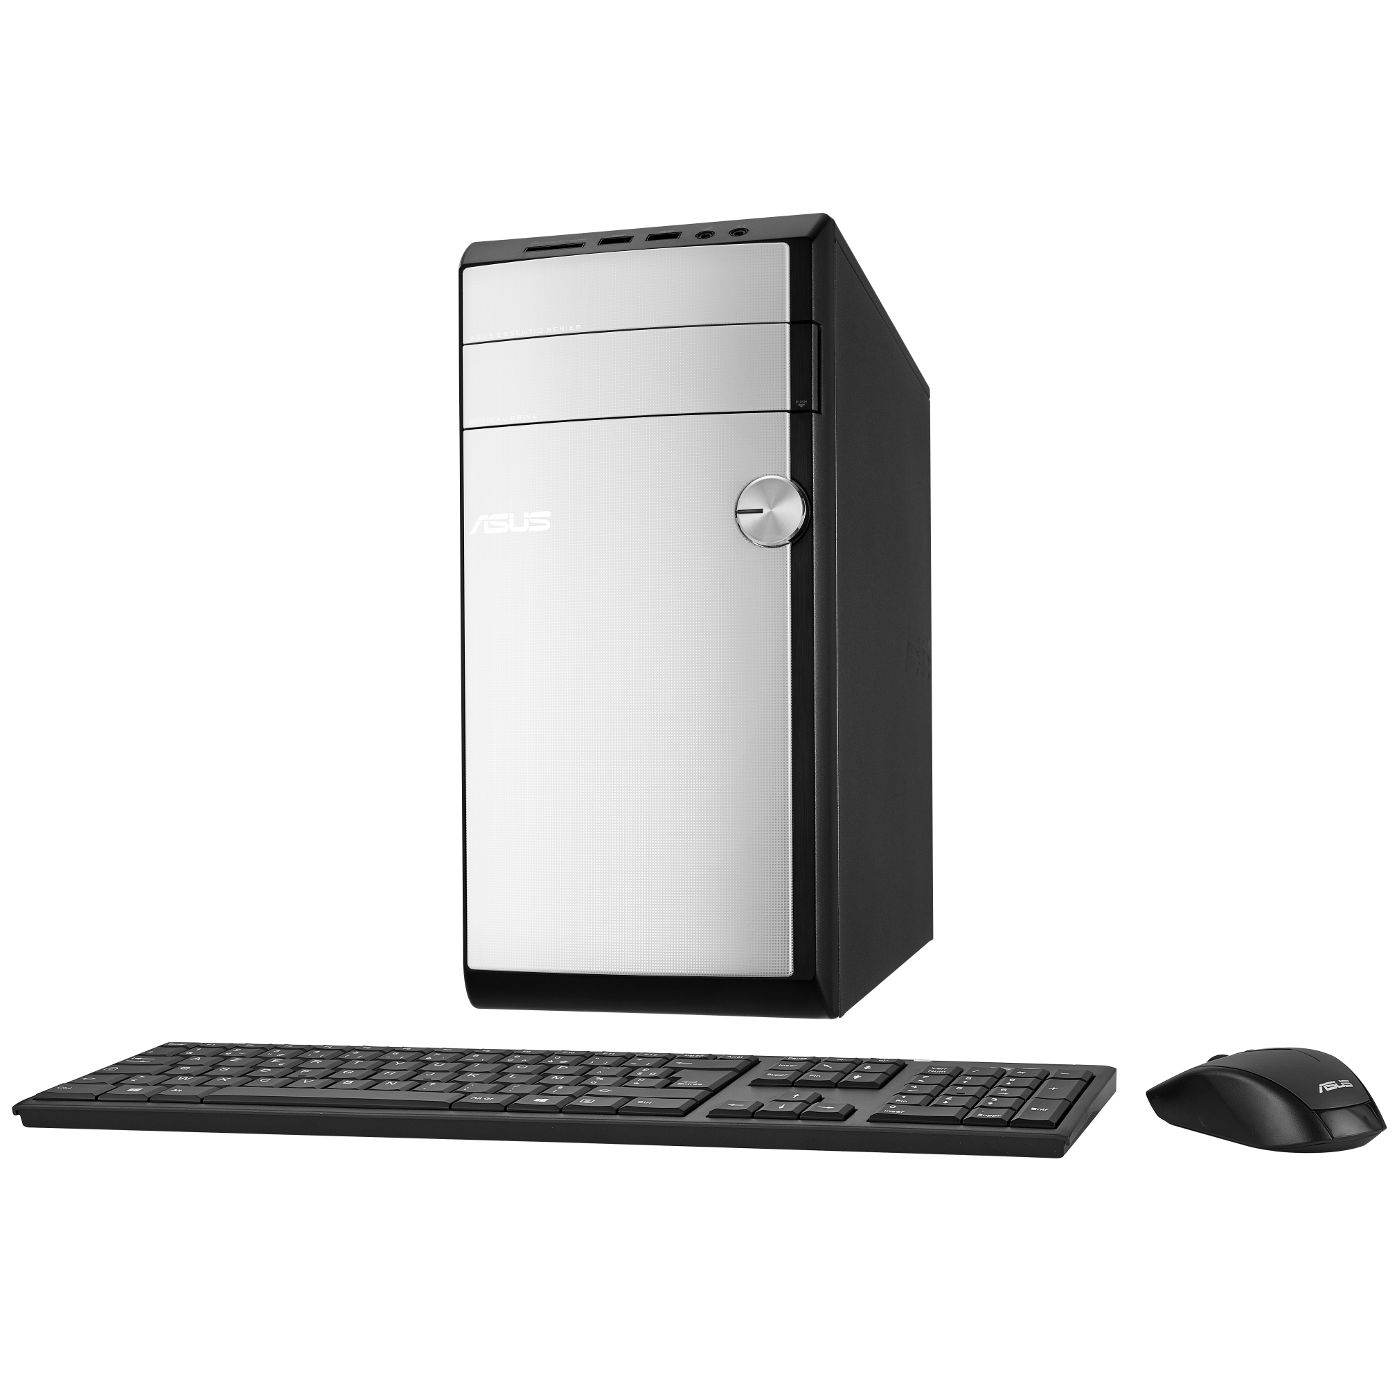 asus m31ad fr013s blanc pc de bureau asus sur. Black Bedroom Furniture Sets. Home Design Ideas